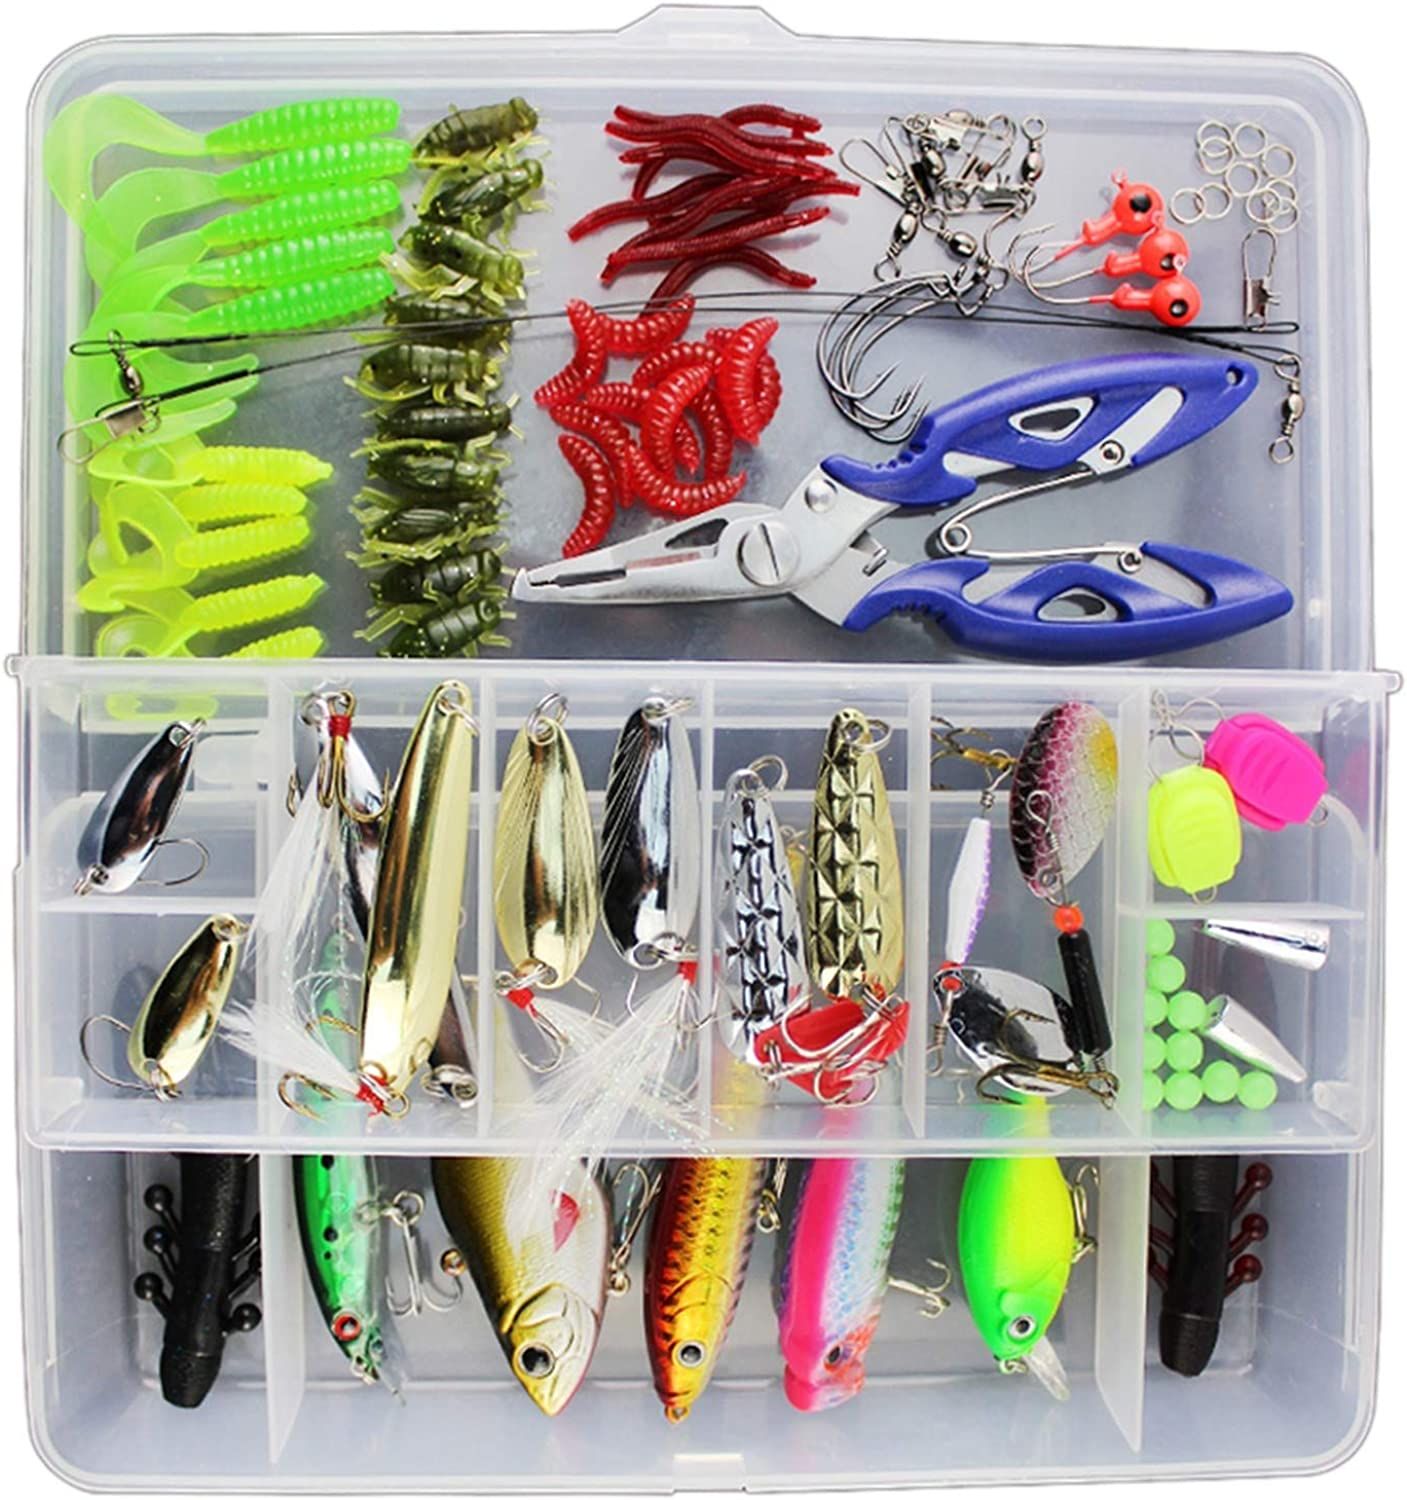 73 101 132Pcs Fishing Lures Set Mixed Minnow Popper Fish Lure Box Spinner Spoon Artificial Bait Kit